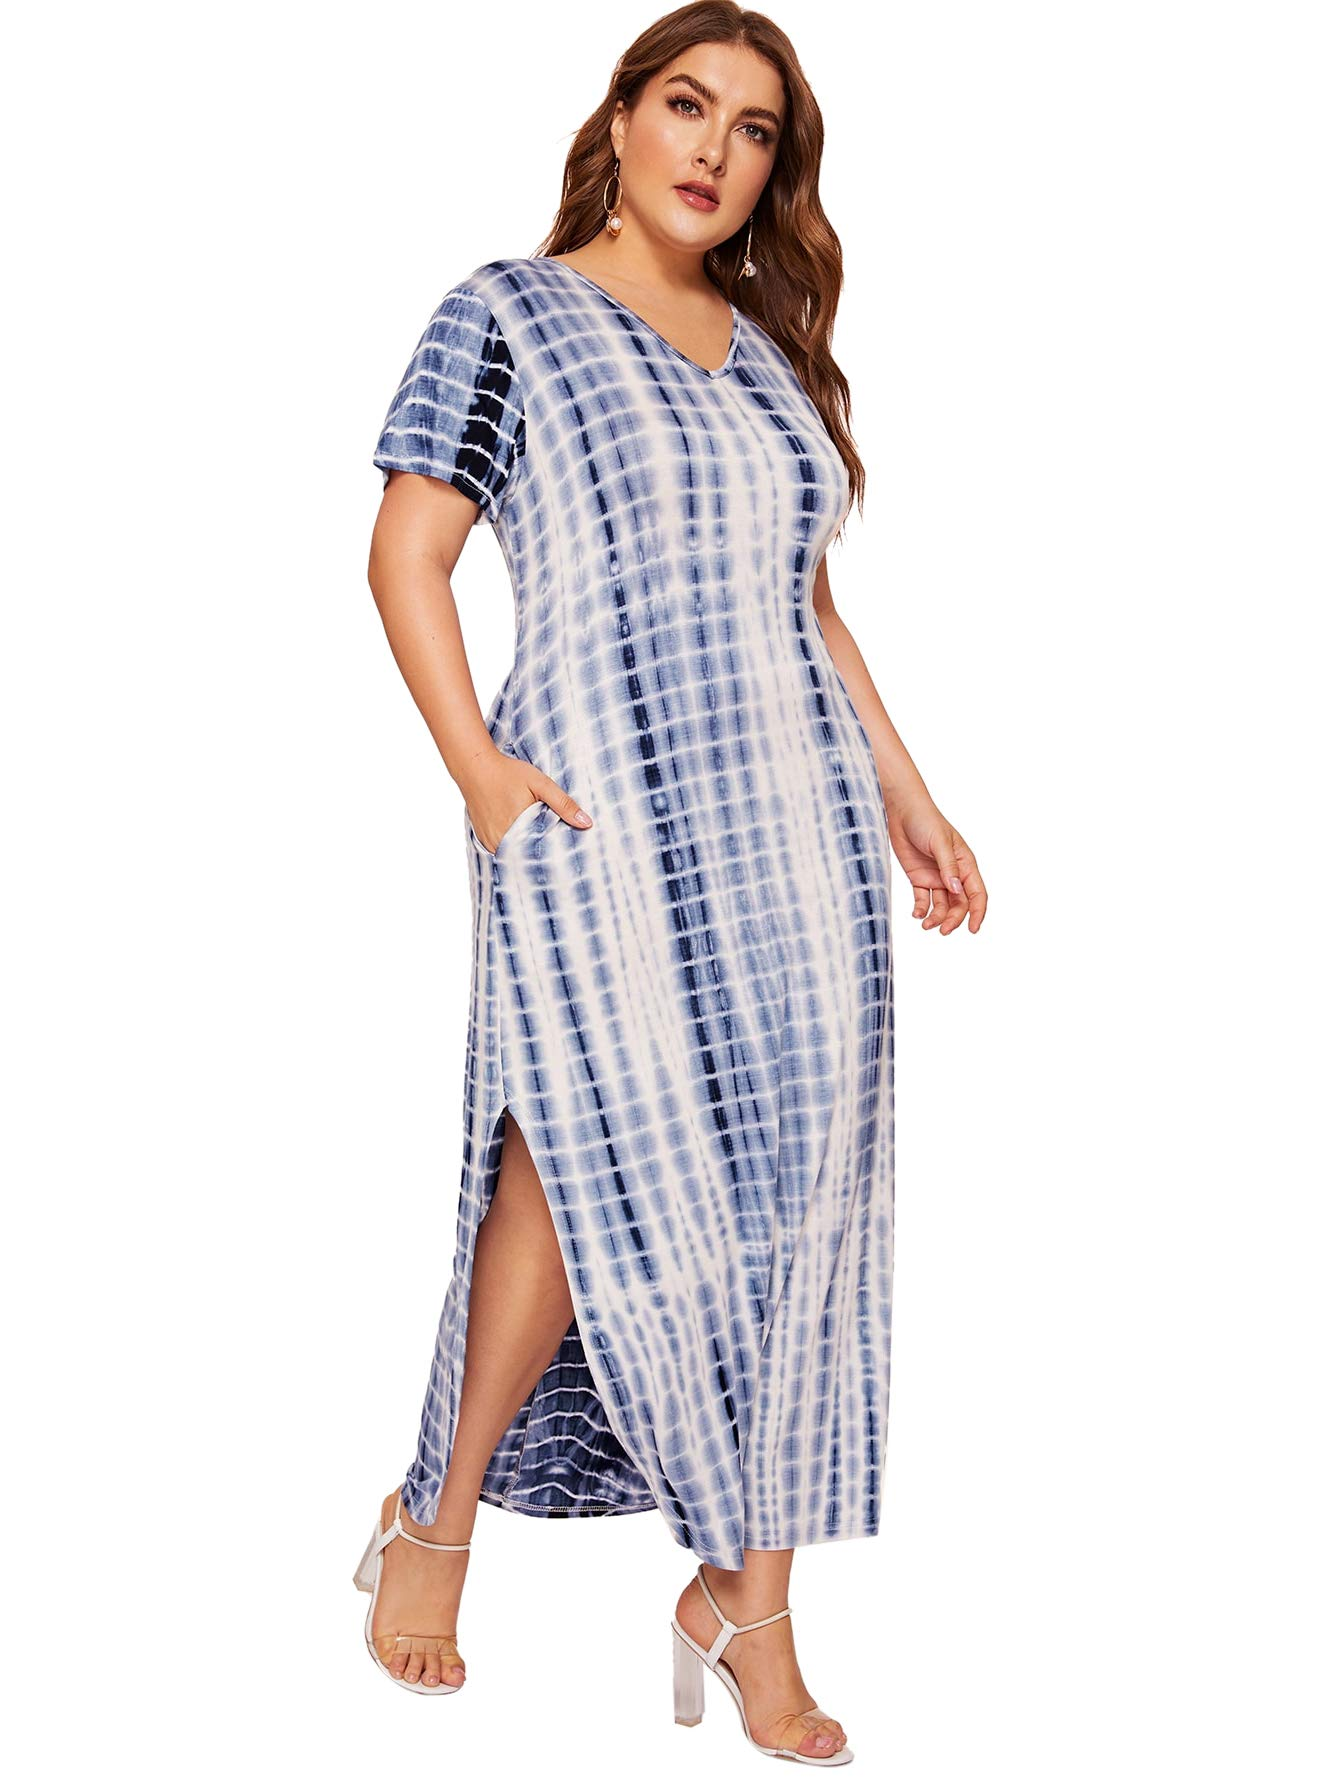 a2b1d8f2d Romwe Women's Plus Size Tie Dye Split Maxi Dress with Pocket Blue 3XL